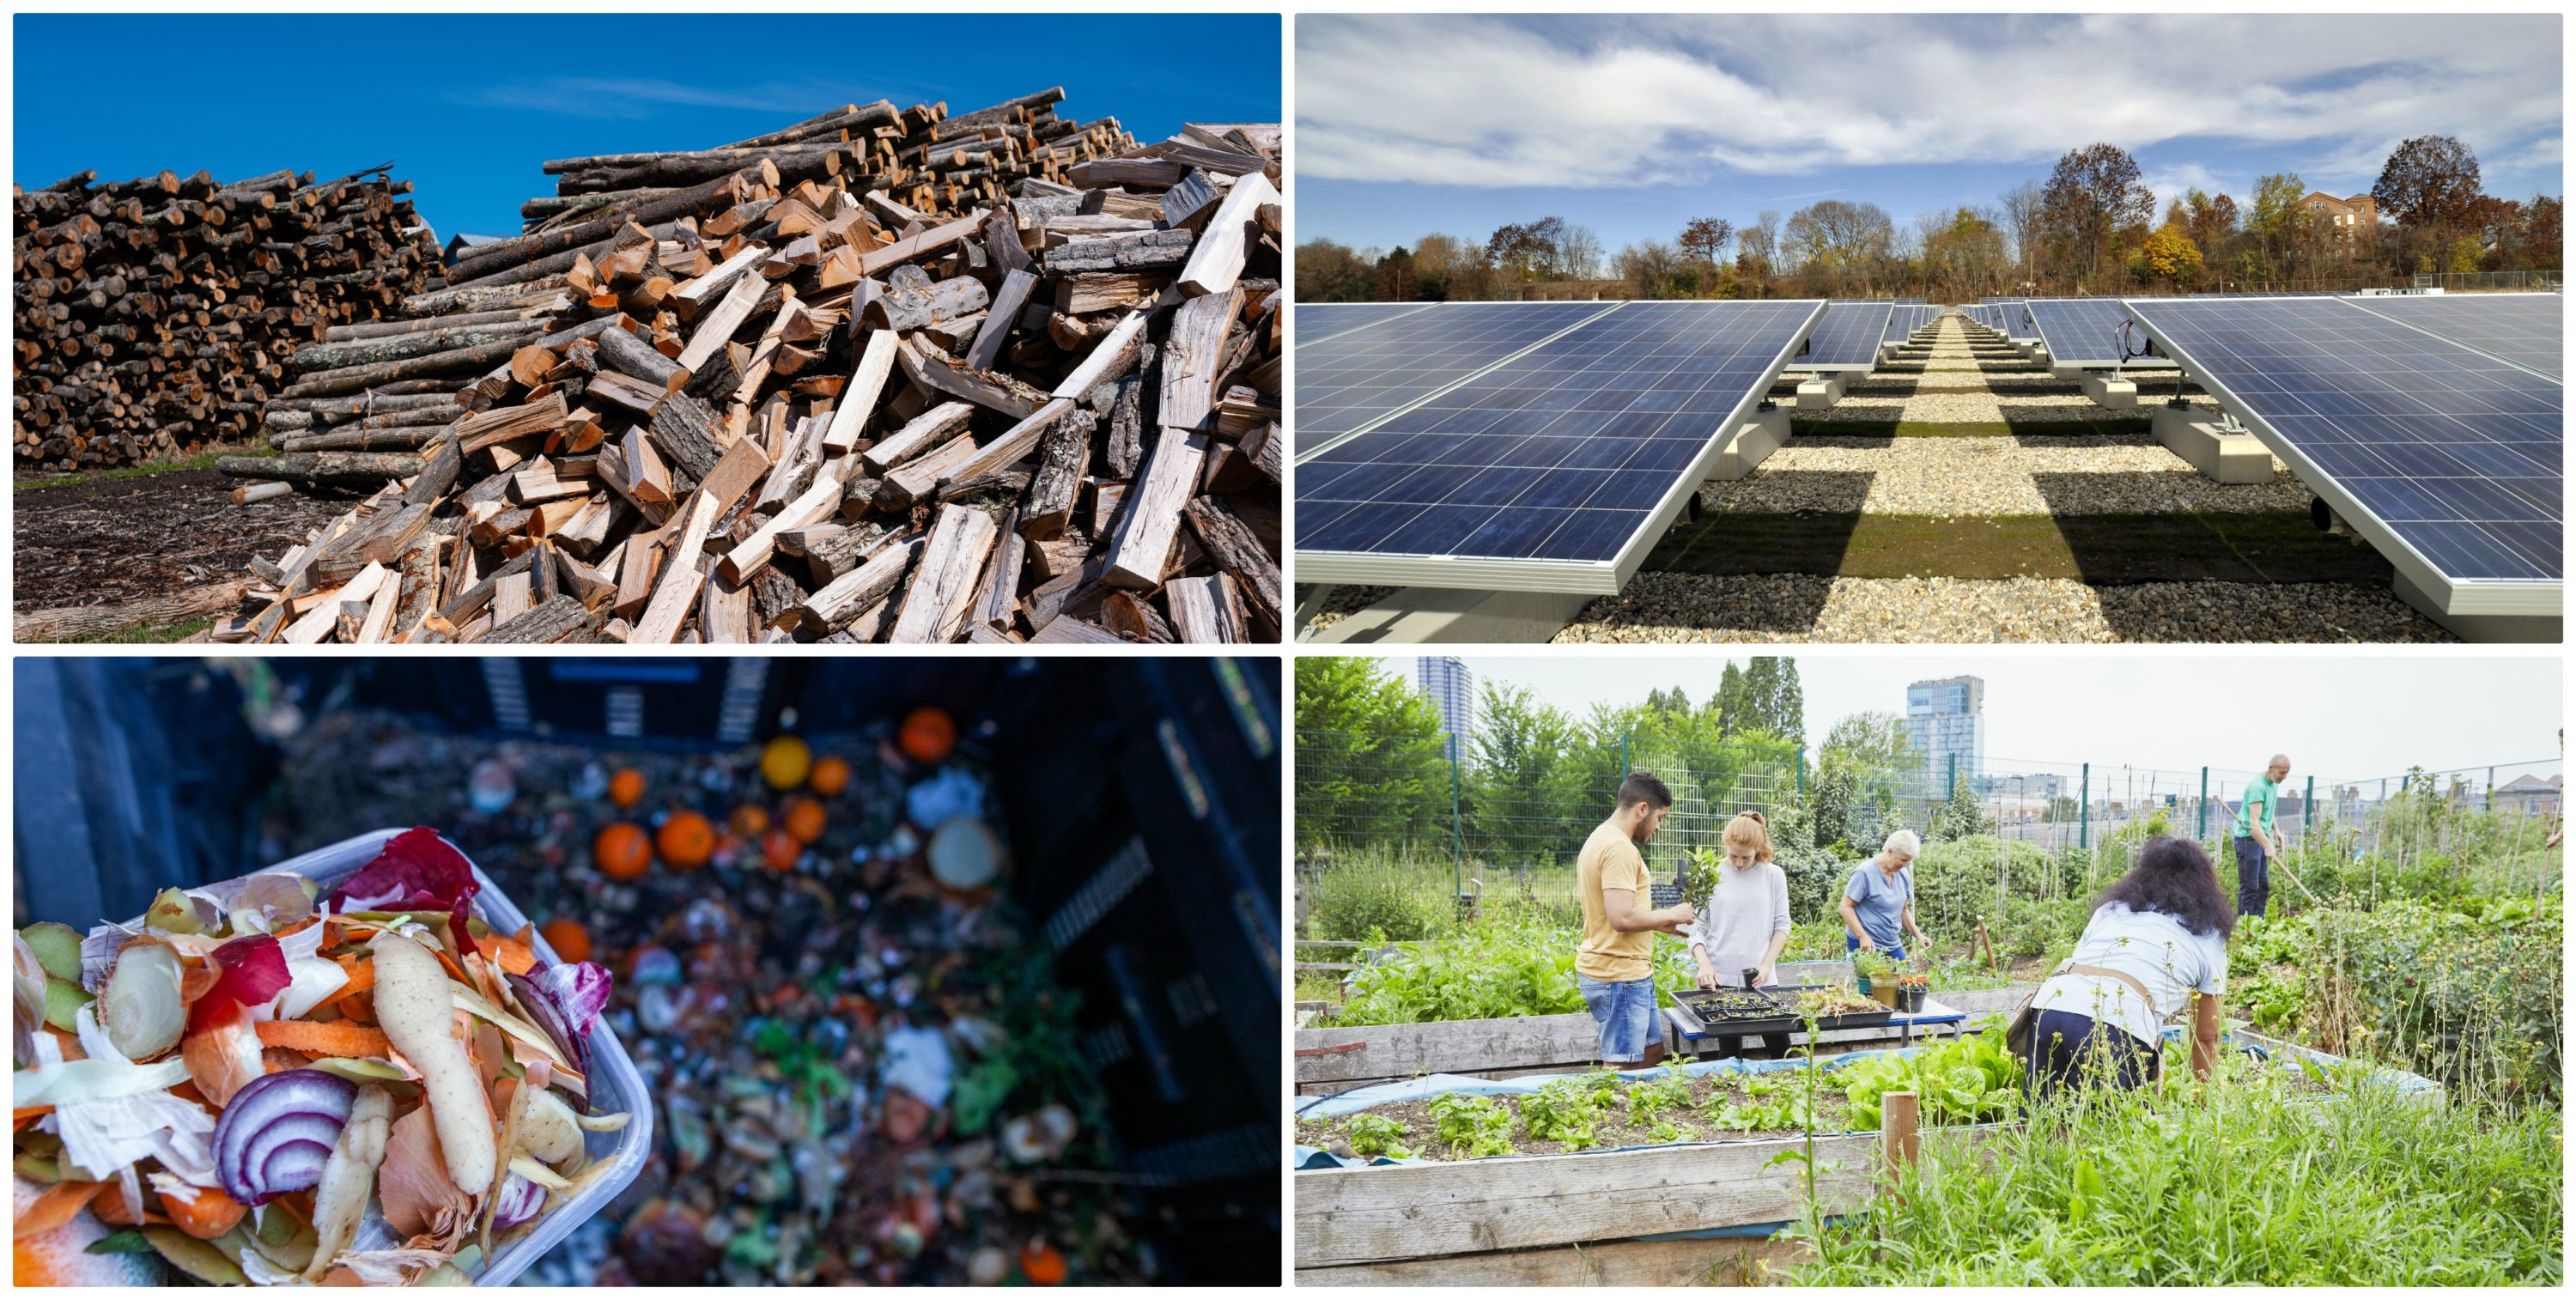 Clockwise from top left, hardwood logs in Charlotte, Vermont in 2020; solar panels in Pittsfield, Mass. in 2010; a group of volunteers work in a community garden; compostable food (AP Images; Getty Images; and Compassionate Eye Foundation/Natasha Alipour Faridani via Getty Images)